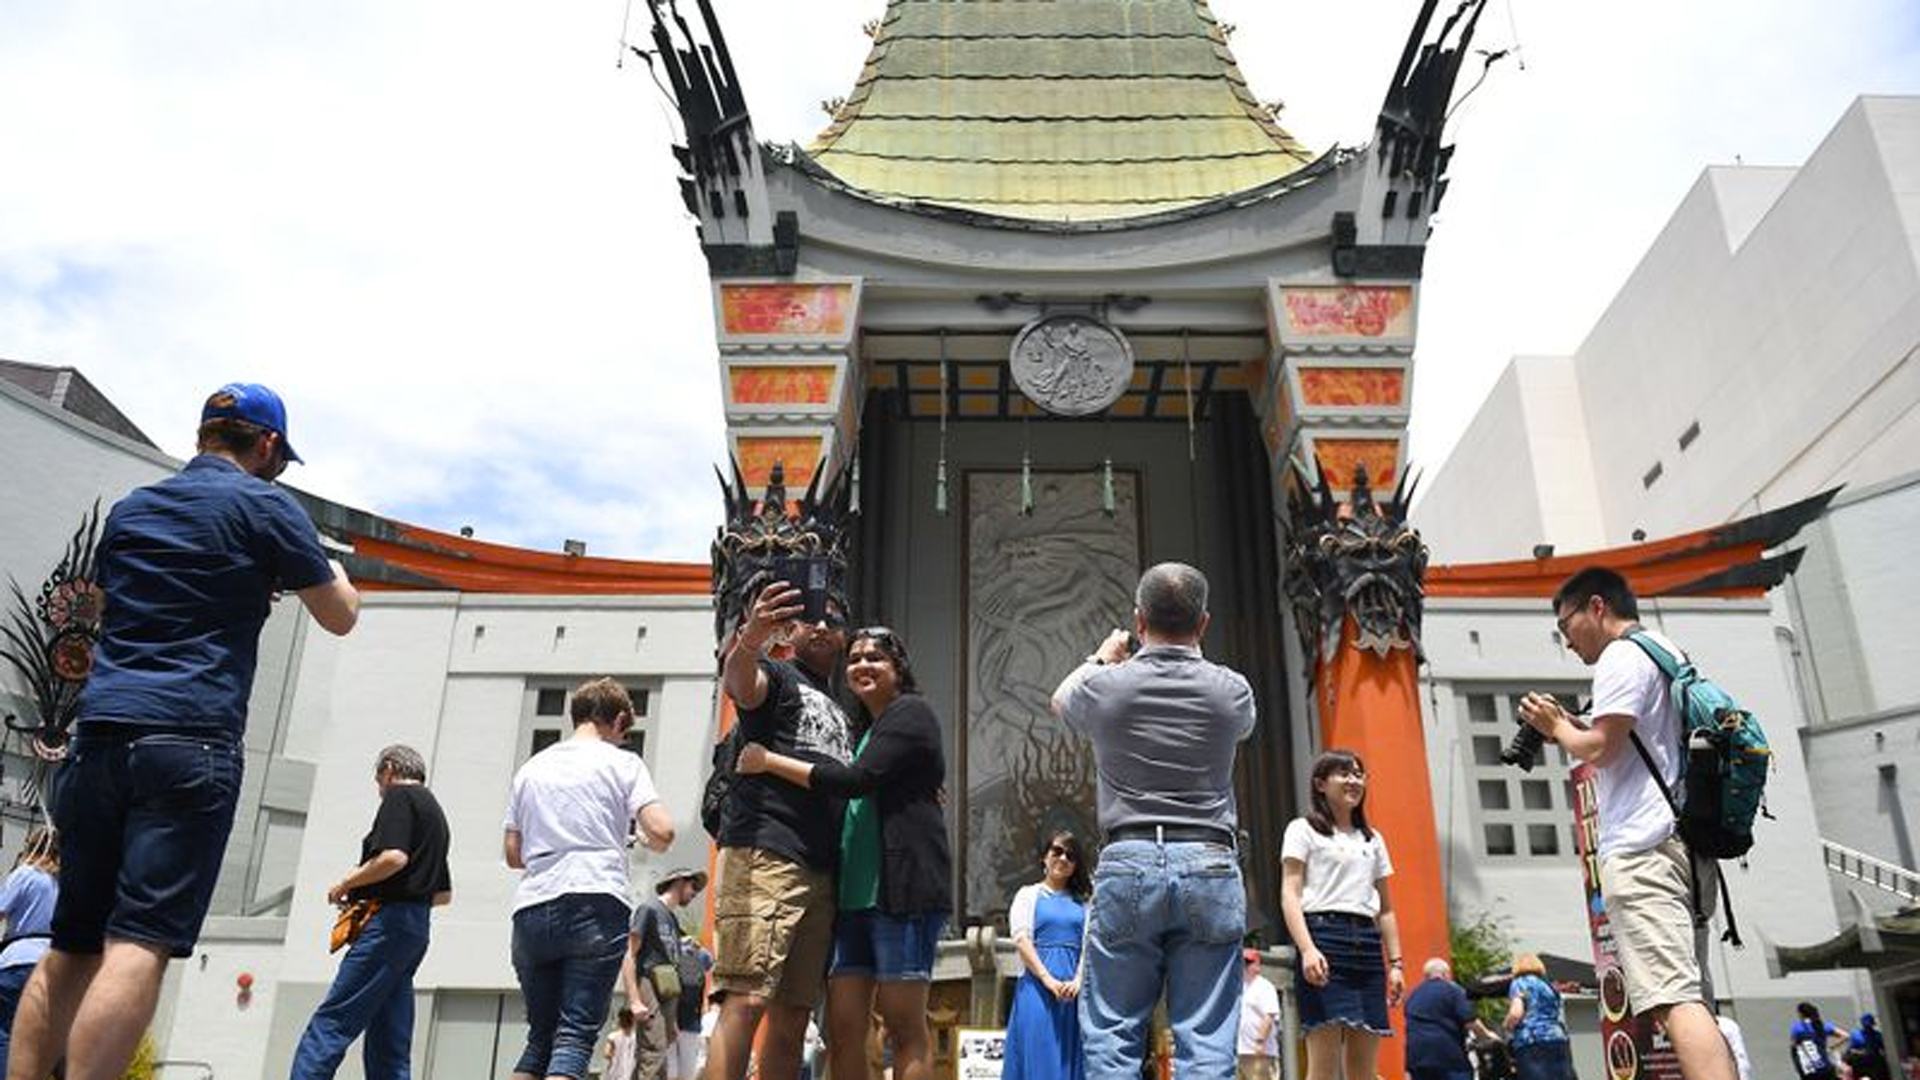 Tourists visit the TCL Chinese Theatre IMAX in Hollywood. (Credit: Christina House / Los Angeles Times)